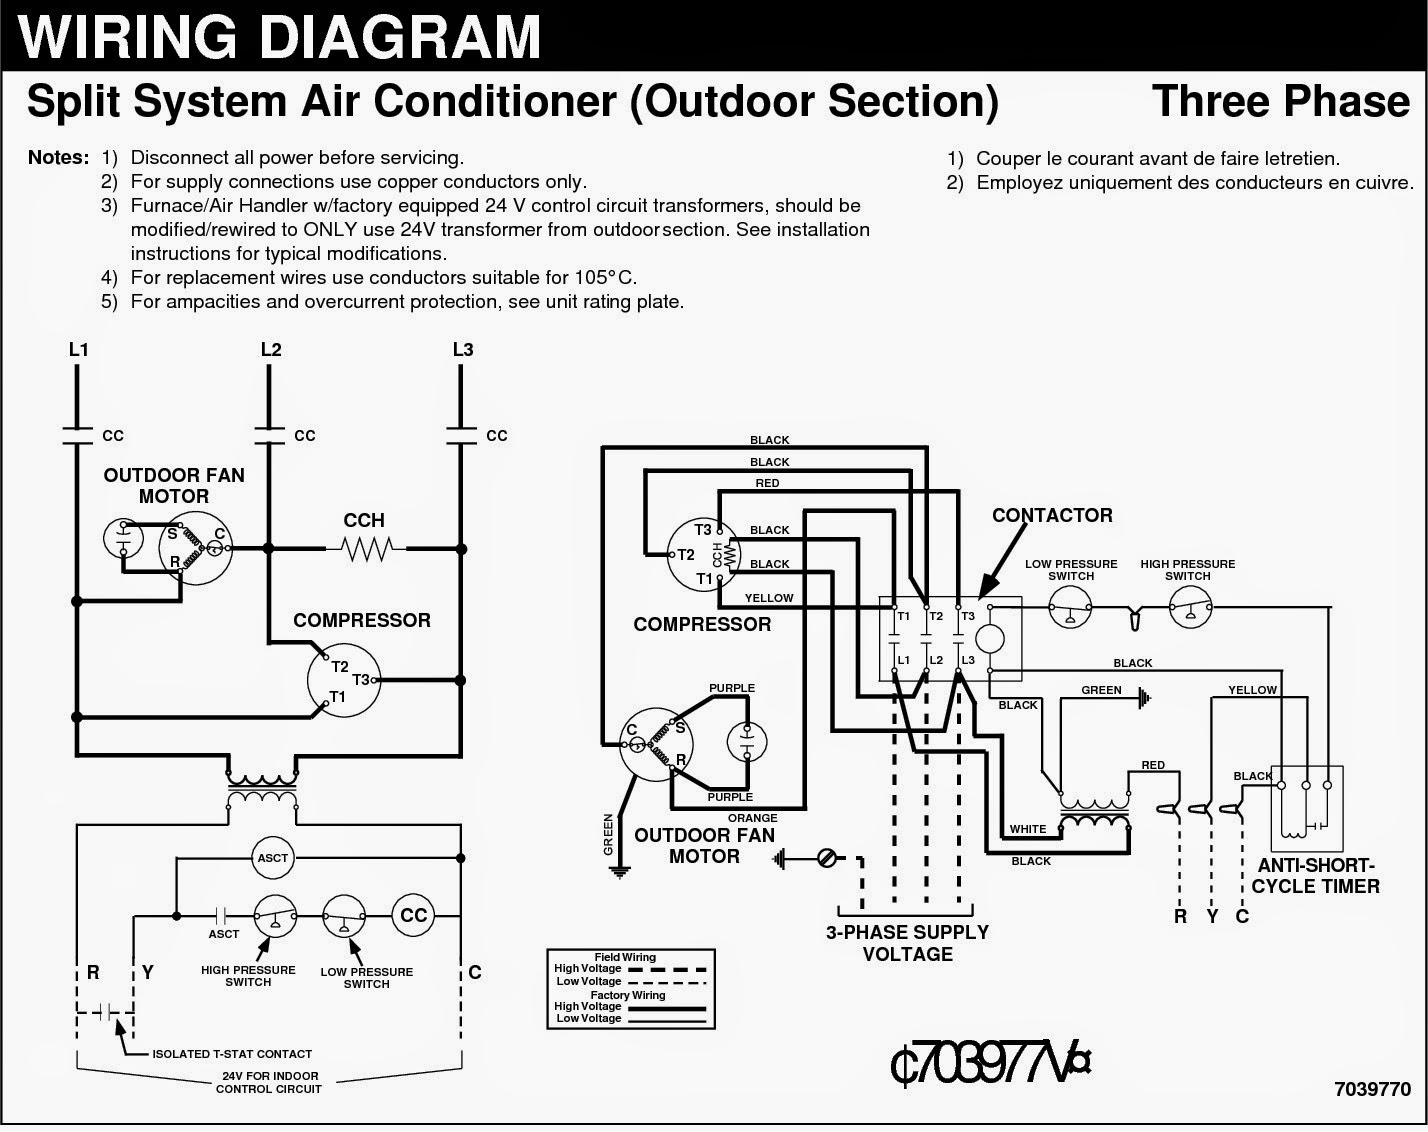 ac low voltage wiring diagram convex mirror ray animation electrical diagrams for air conditioning systems